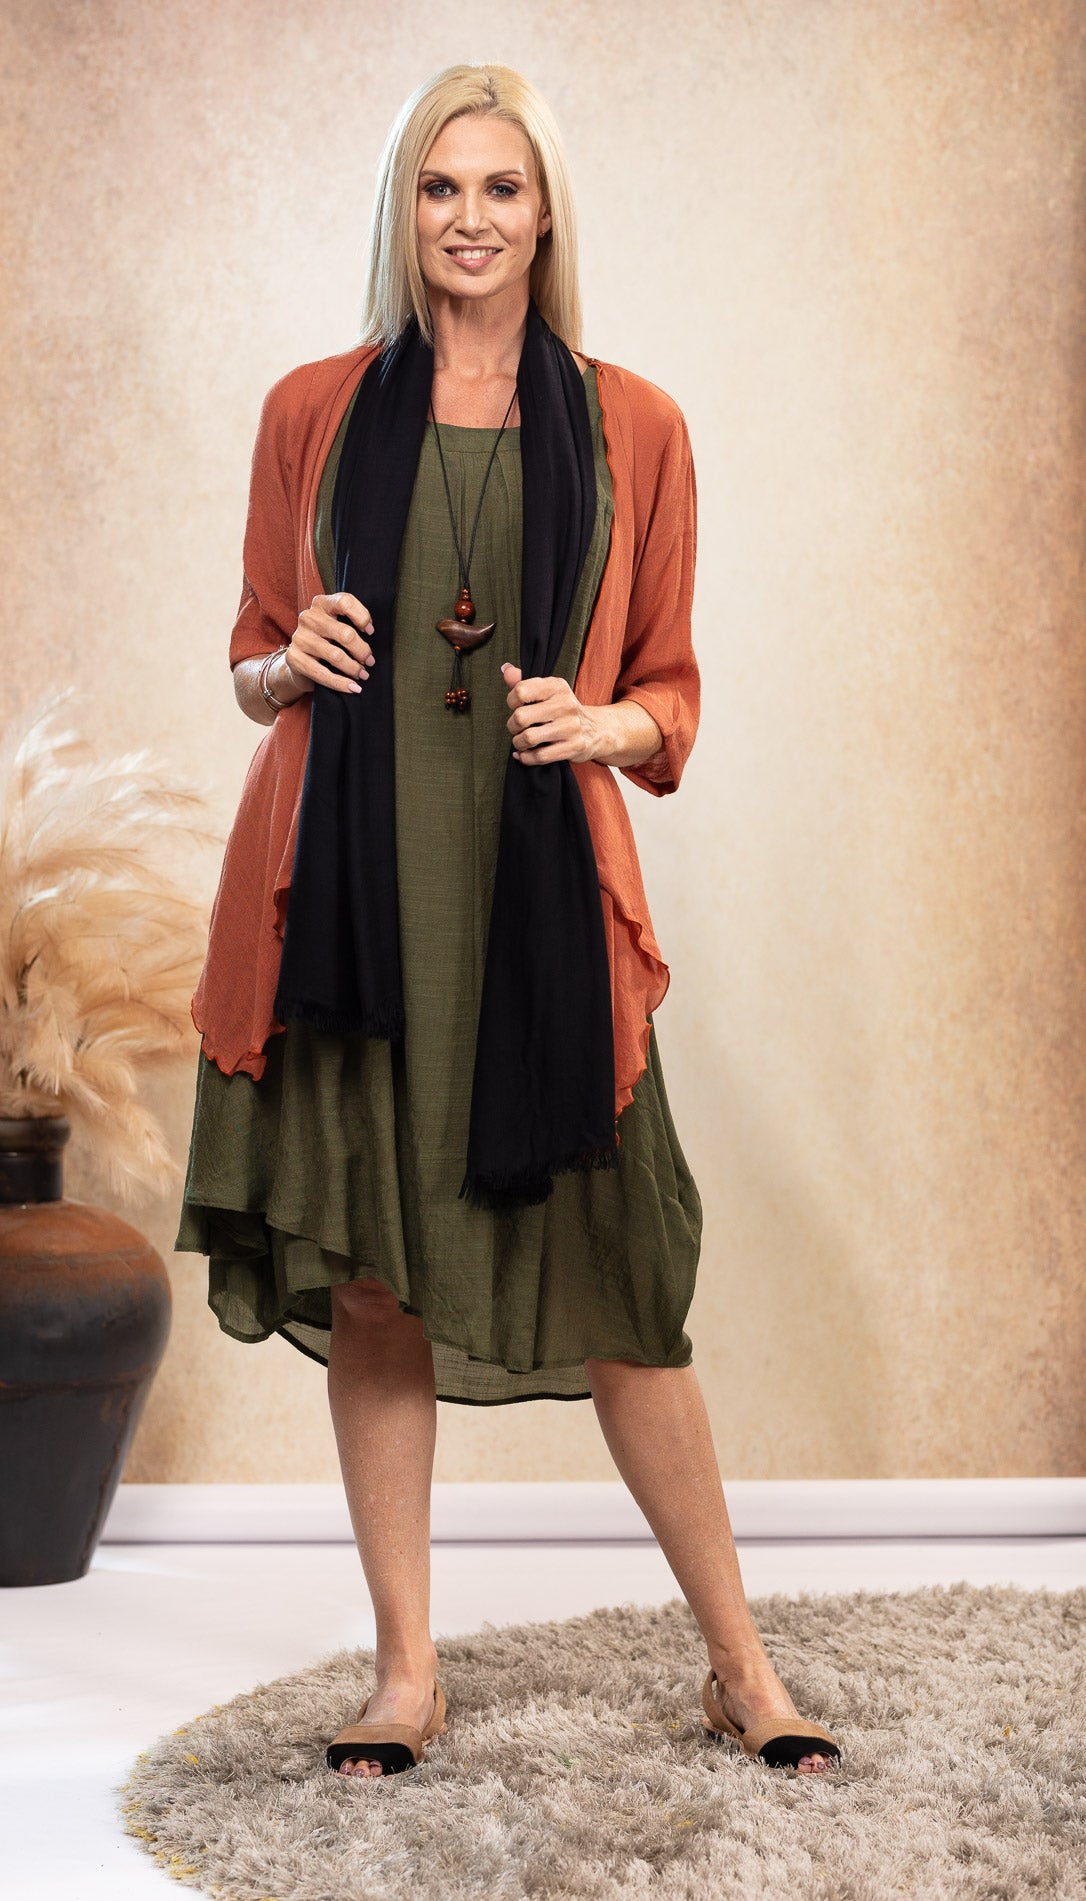 Bamboo Dress in Olive Khaki Green. Black and Taupe Avarca Sandals. Black Organic Bamboo Scarf. Infinity Top Jacket Rust Orange.